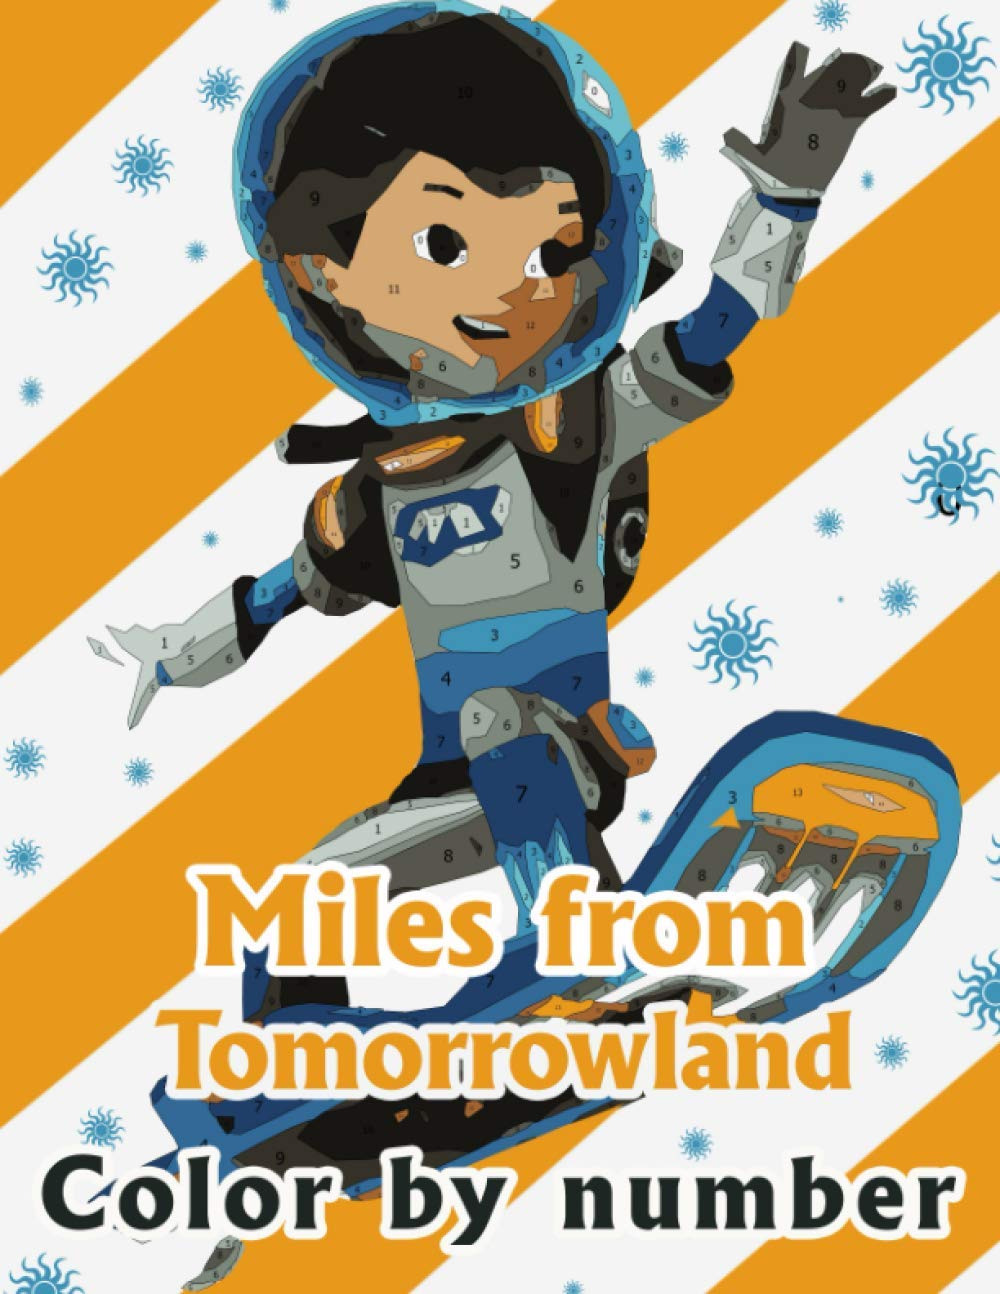 Miles From Tomorrowland Color By Number Space Adventure Series Animation Illustration Color Number Book For Fans Adults Stress Relief Gift Coloring Book Morgan Isabella 9798691920653 Amazon Com Books